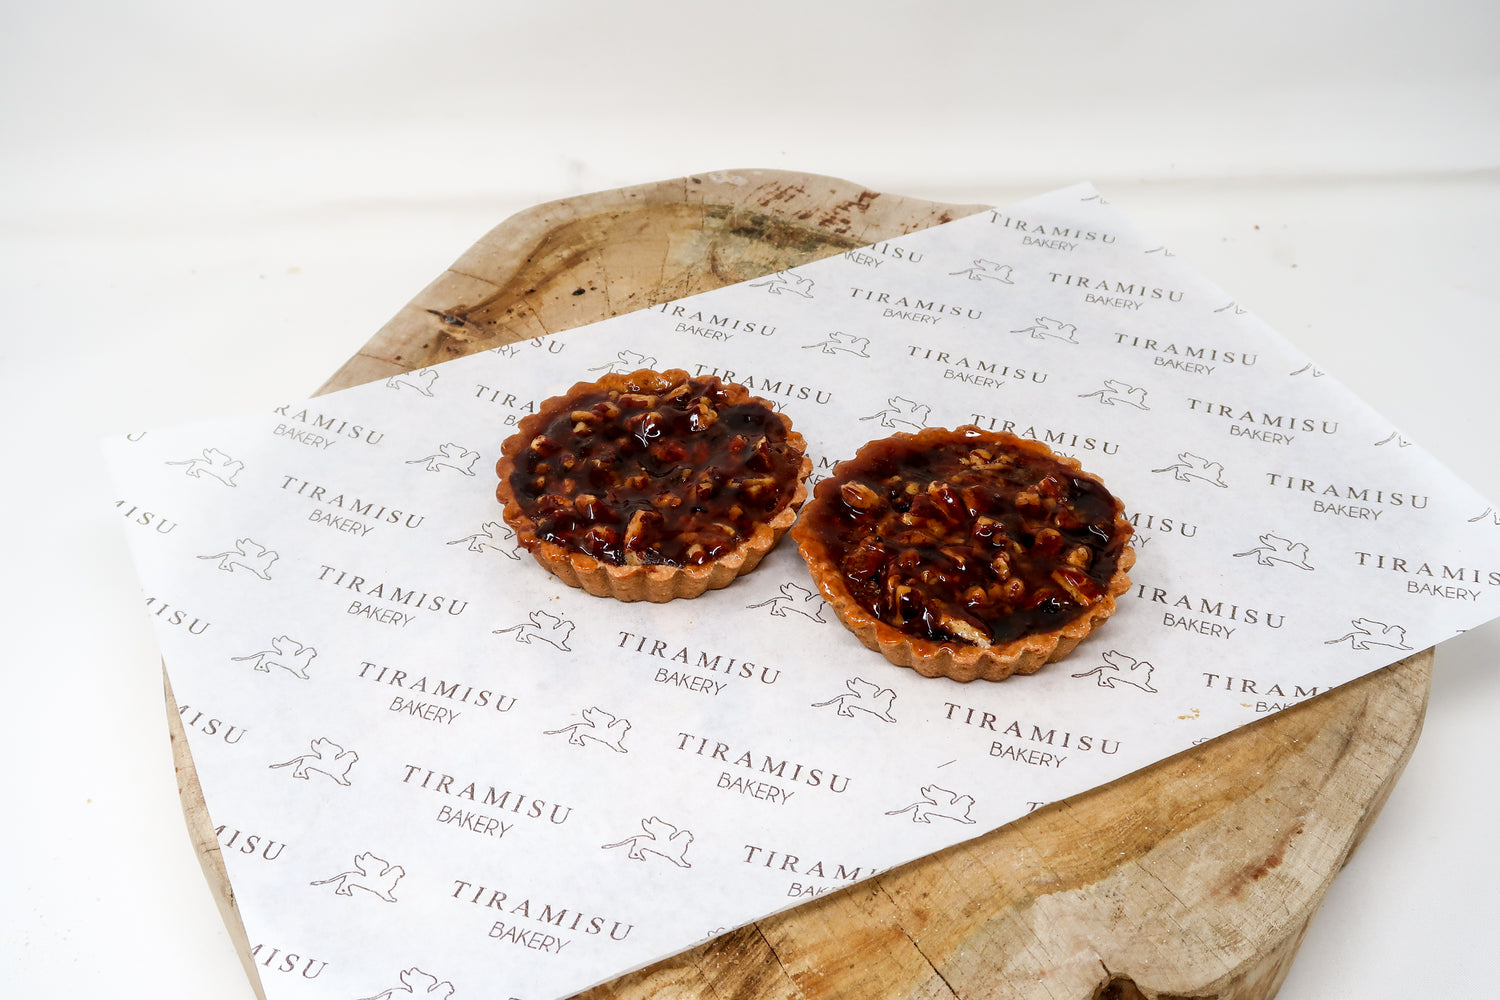 Pecan Tarts - Zucchini Greengrocers LTD